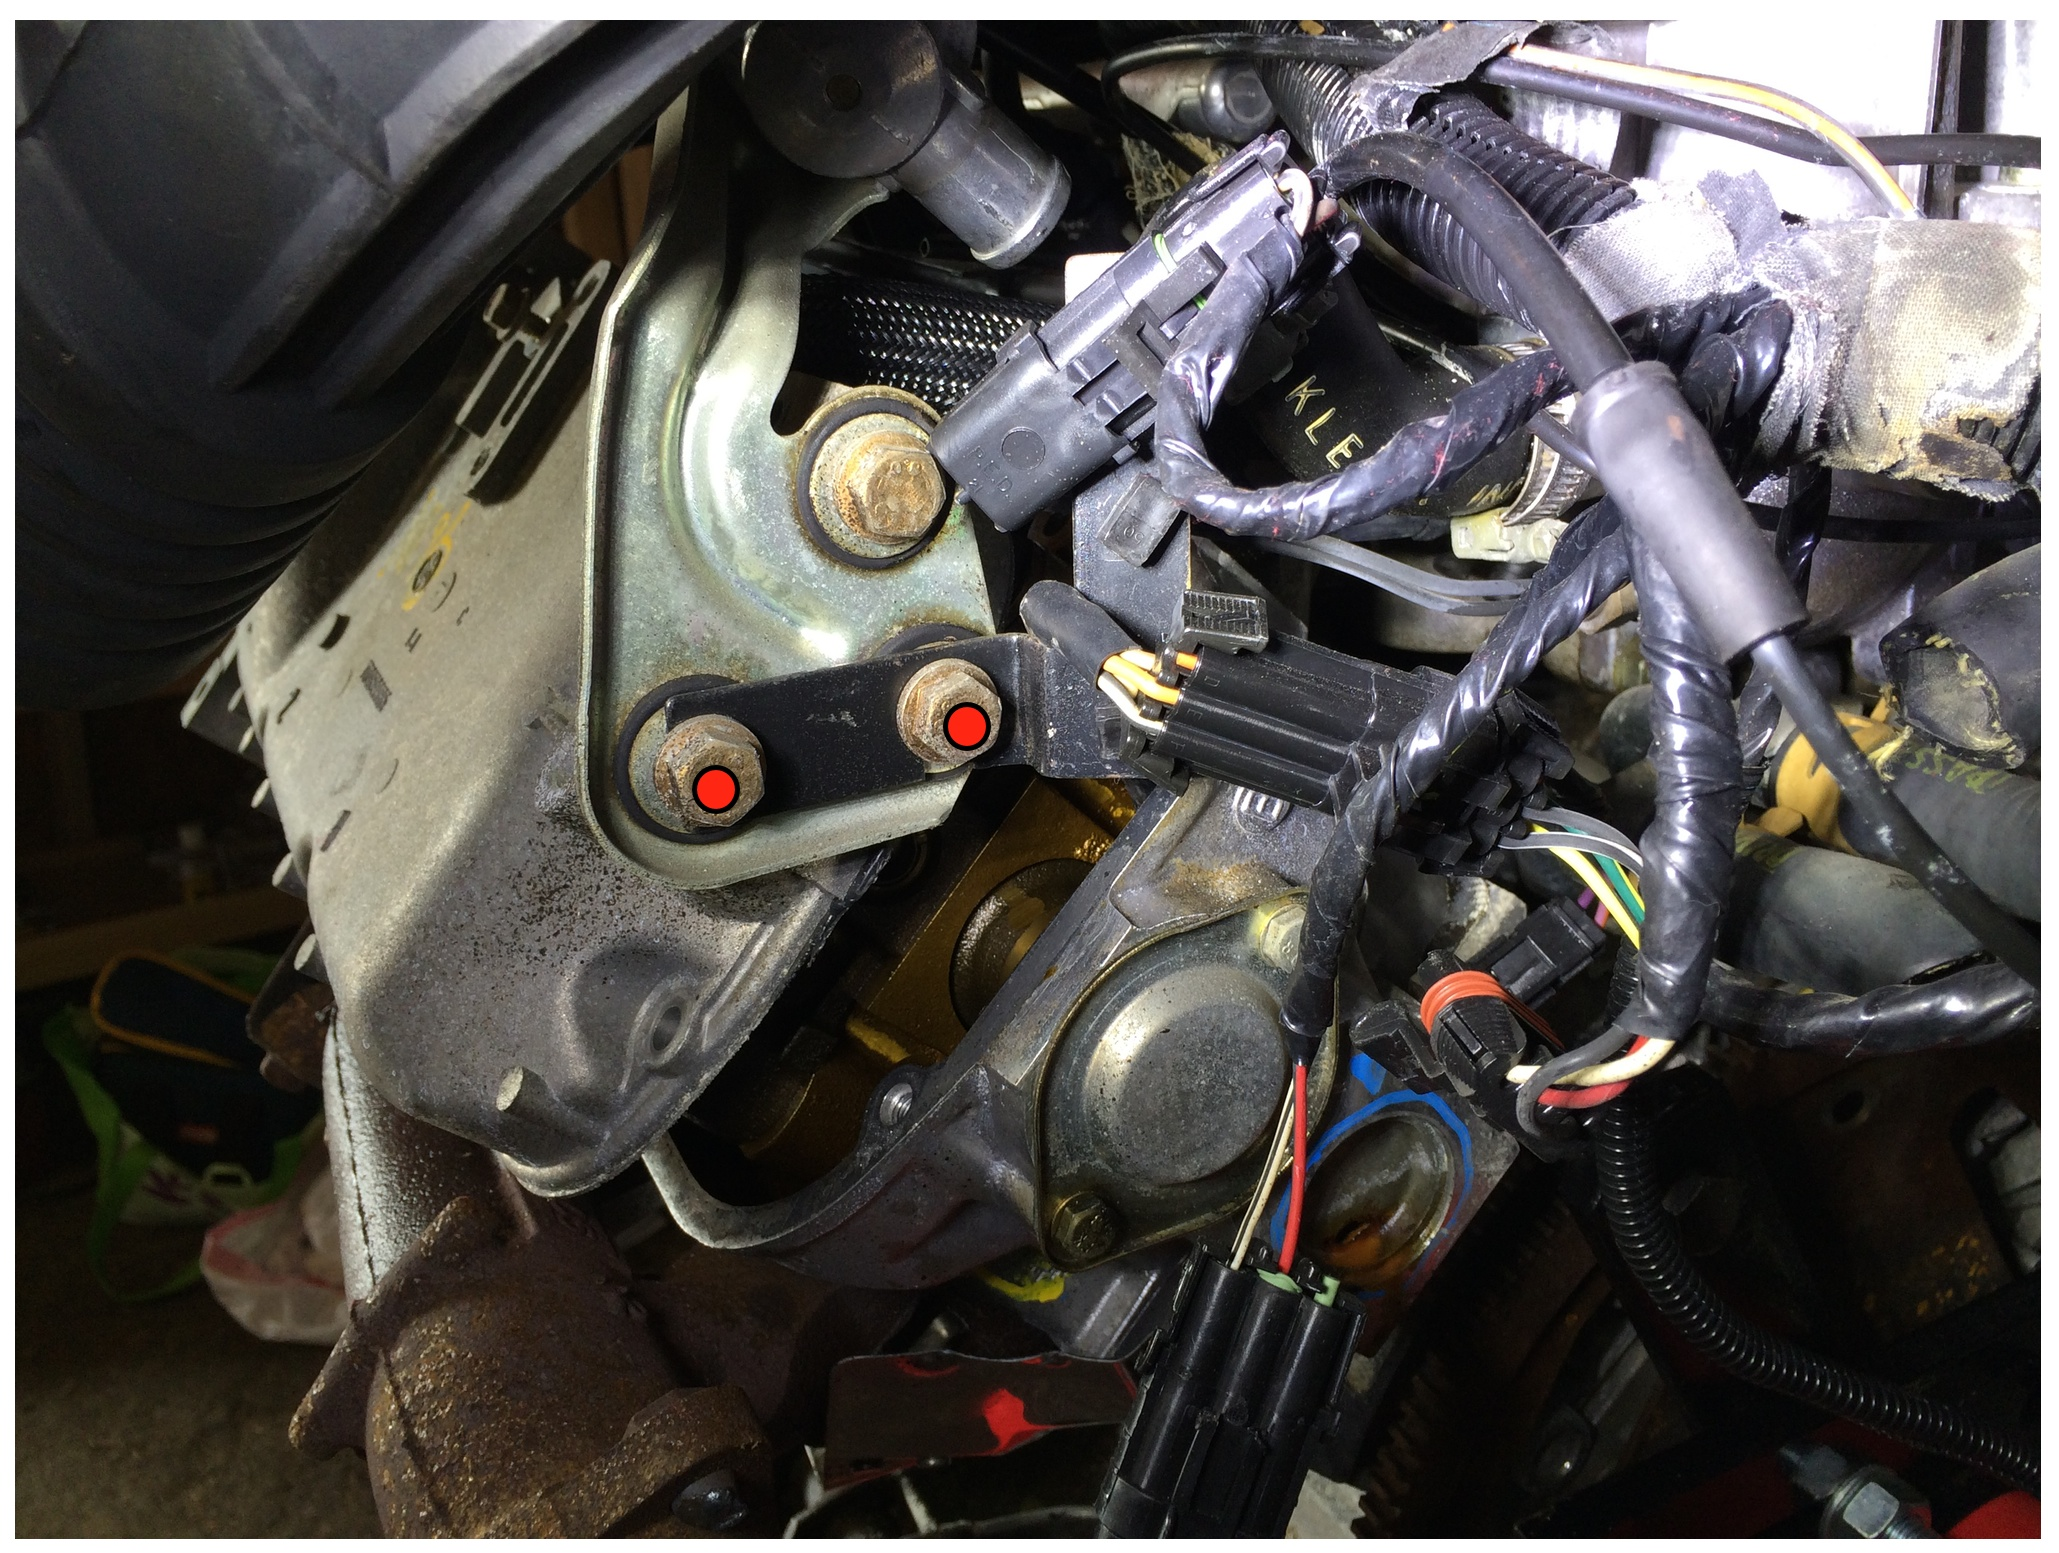 The cold air temperature sensor is mounted on the back of the head, and can be removed by taking out the two nuts marked in red with a 13mm socket. I had already taking out the valve cover heads before realizing the harness was there.